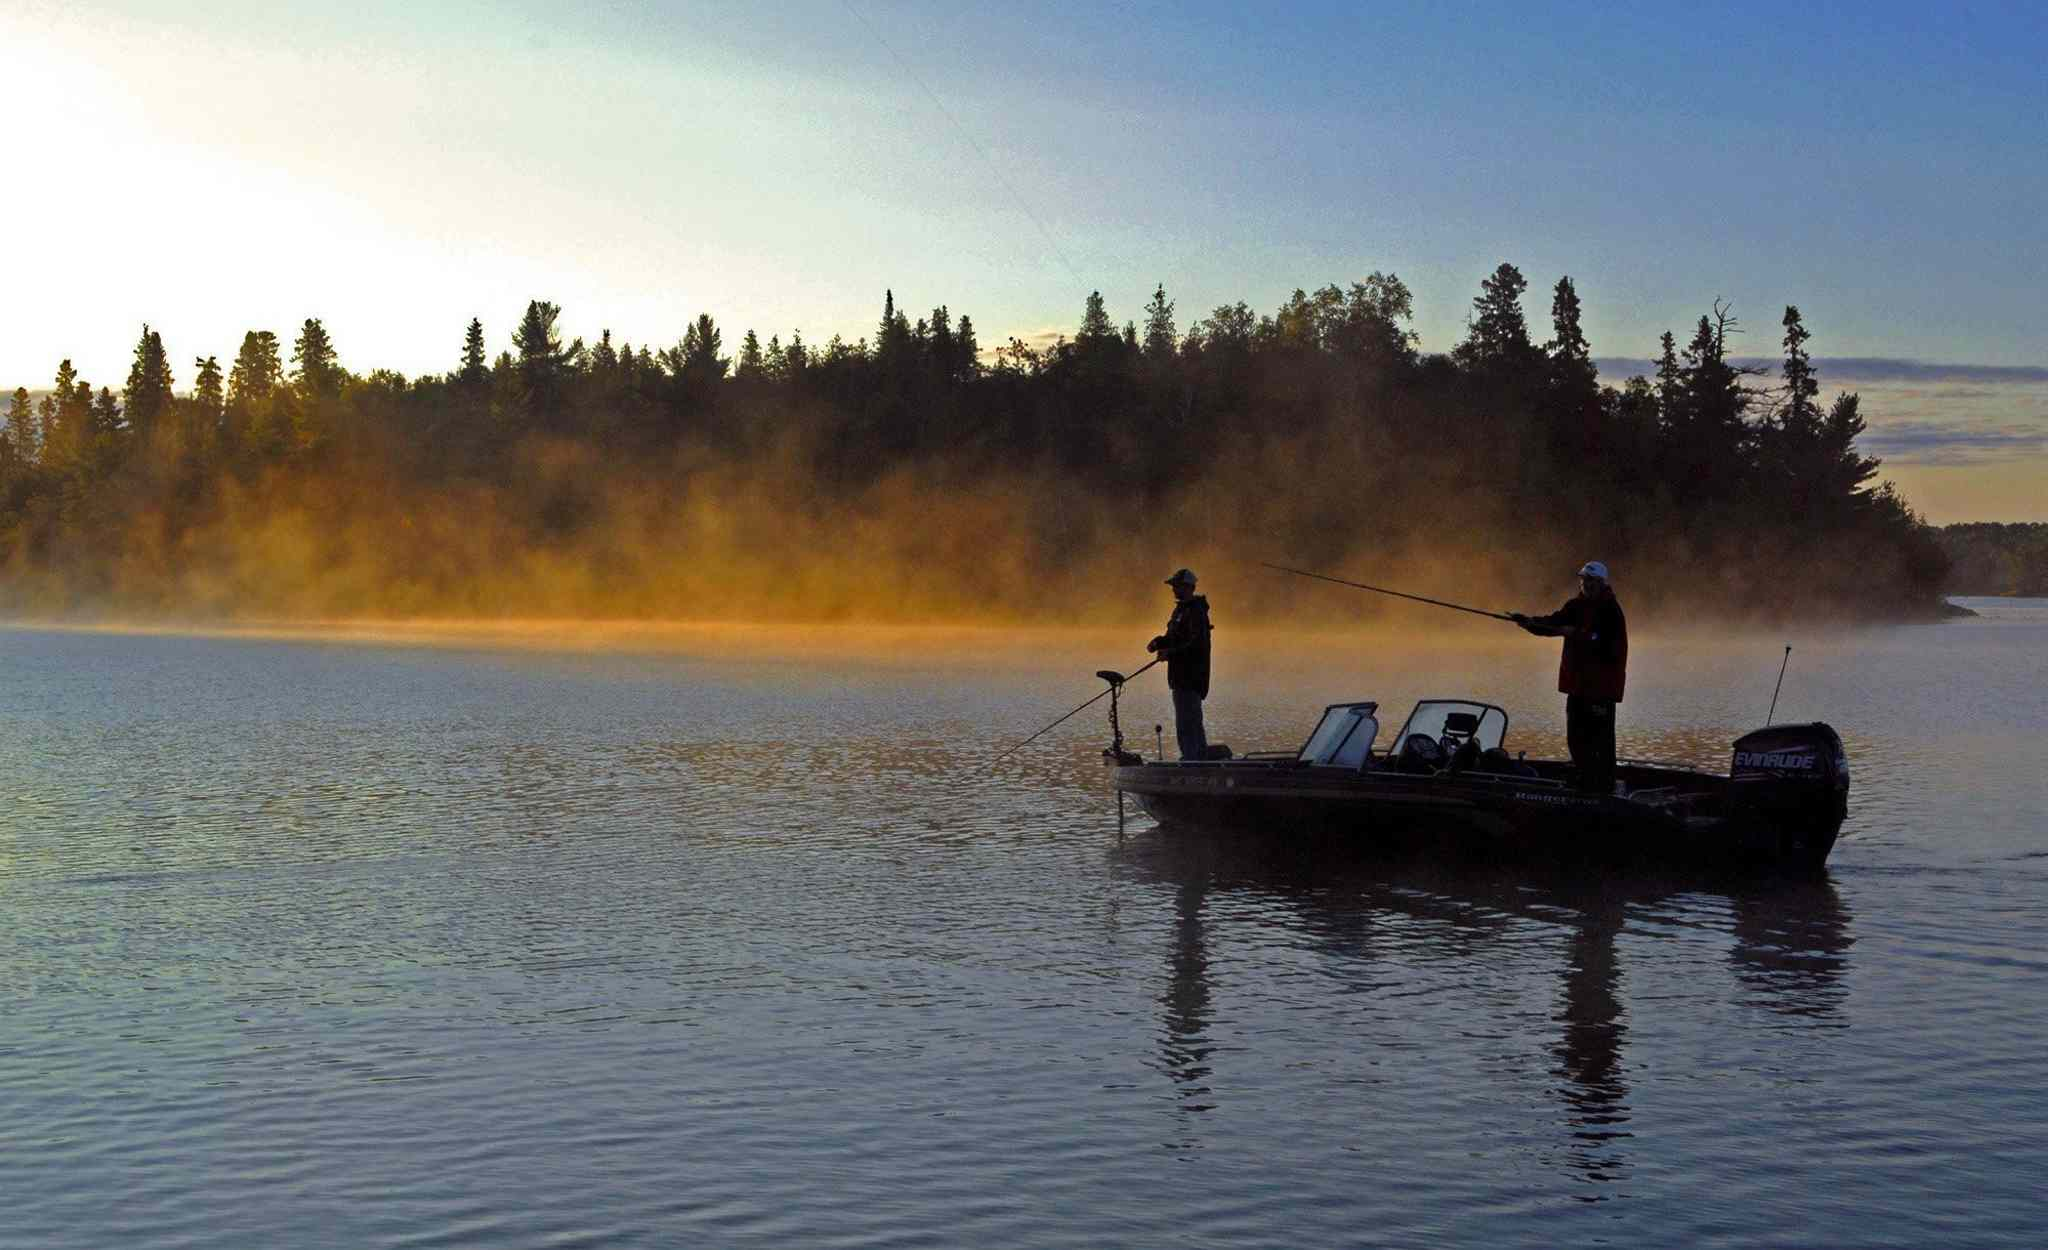 Fishers get to work at sunrise on Lake of the Woods in a file photo.